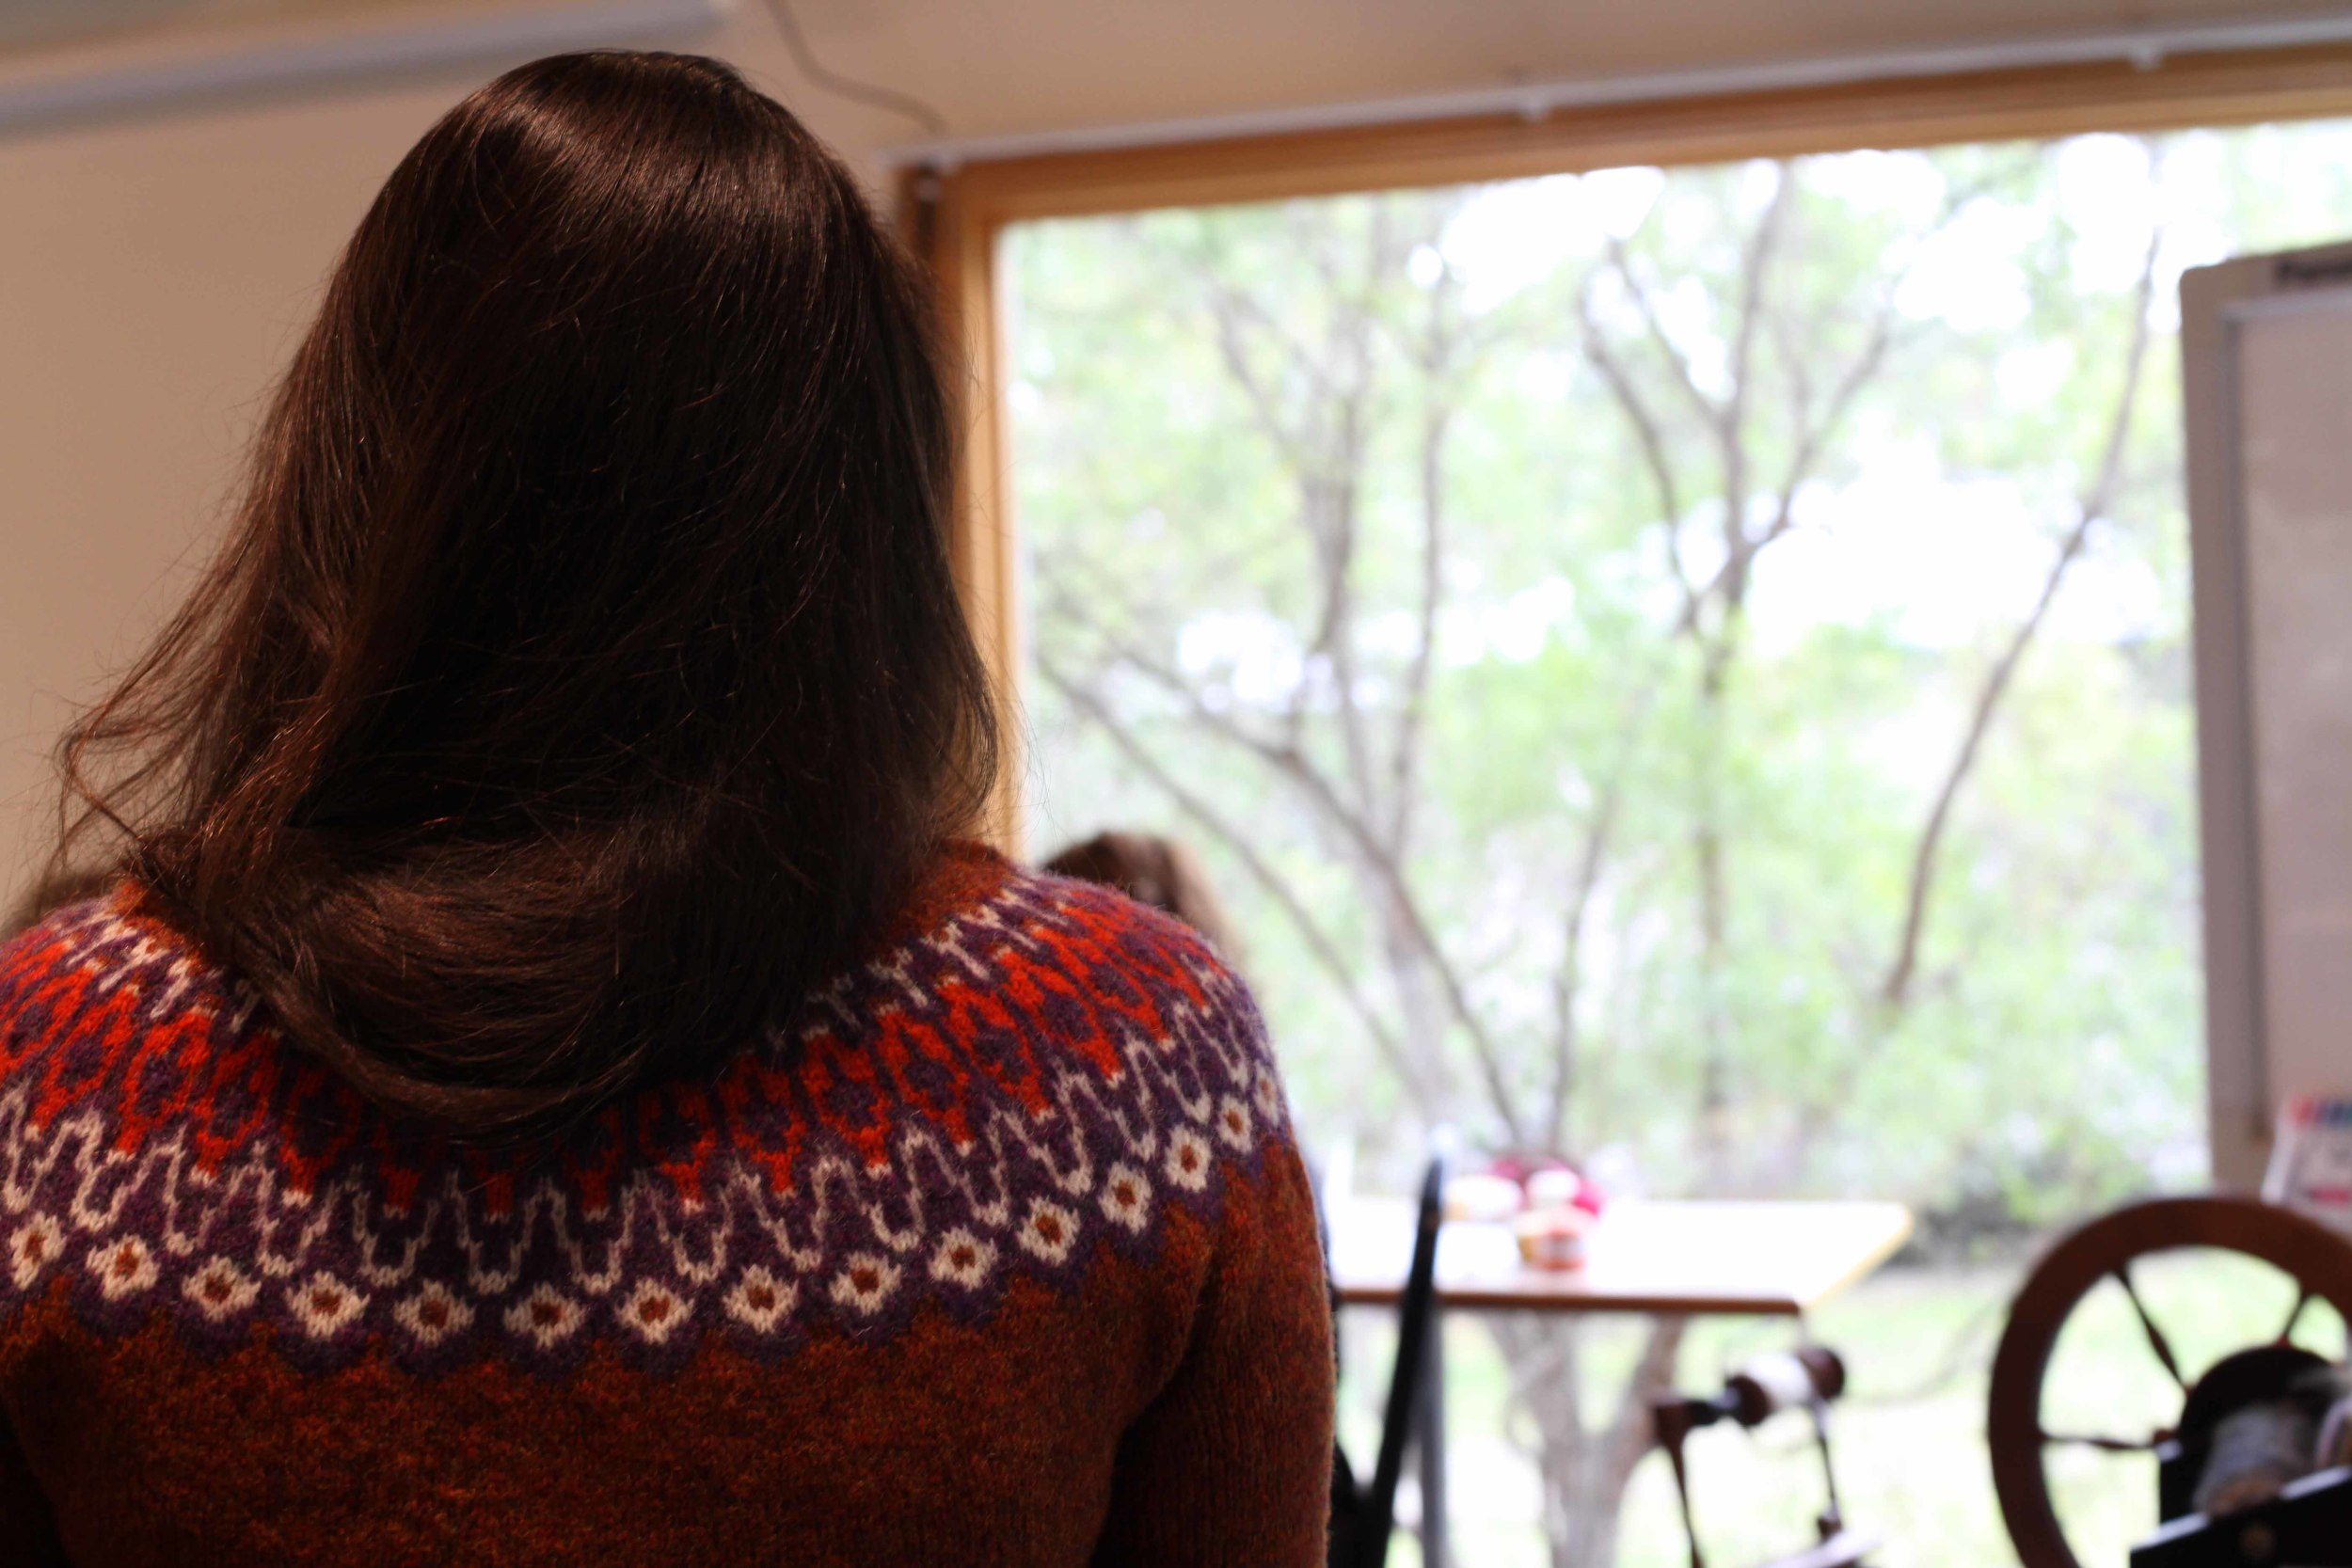 Danielle's gorgeous sweater.